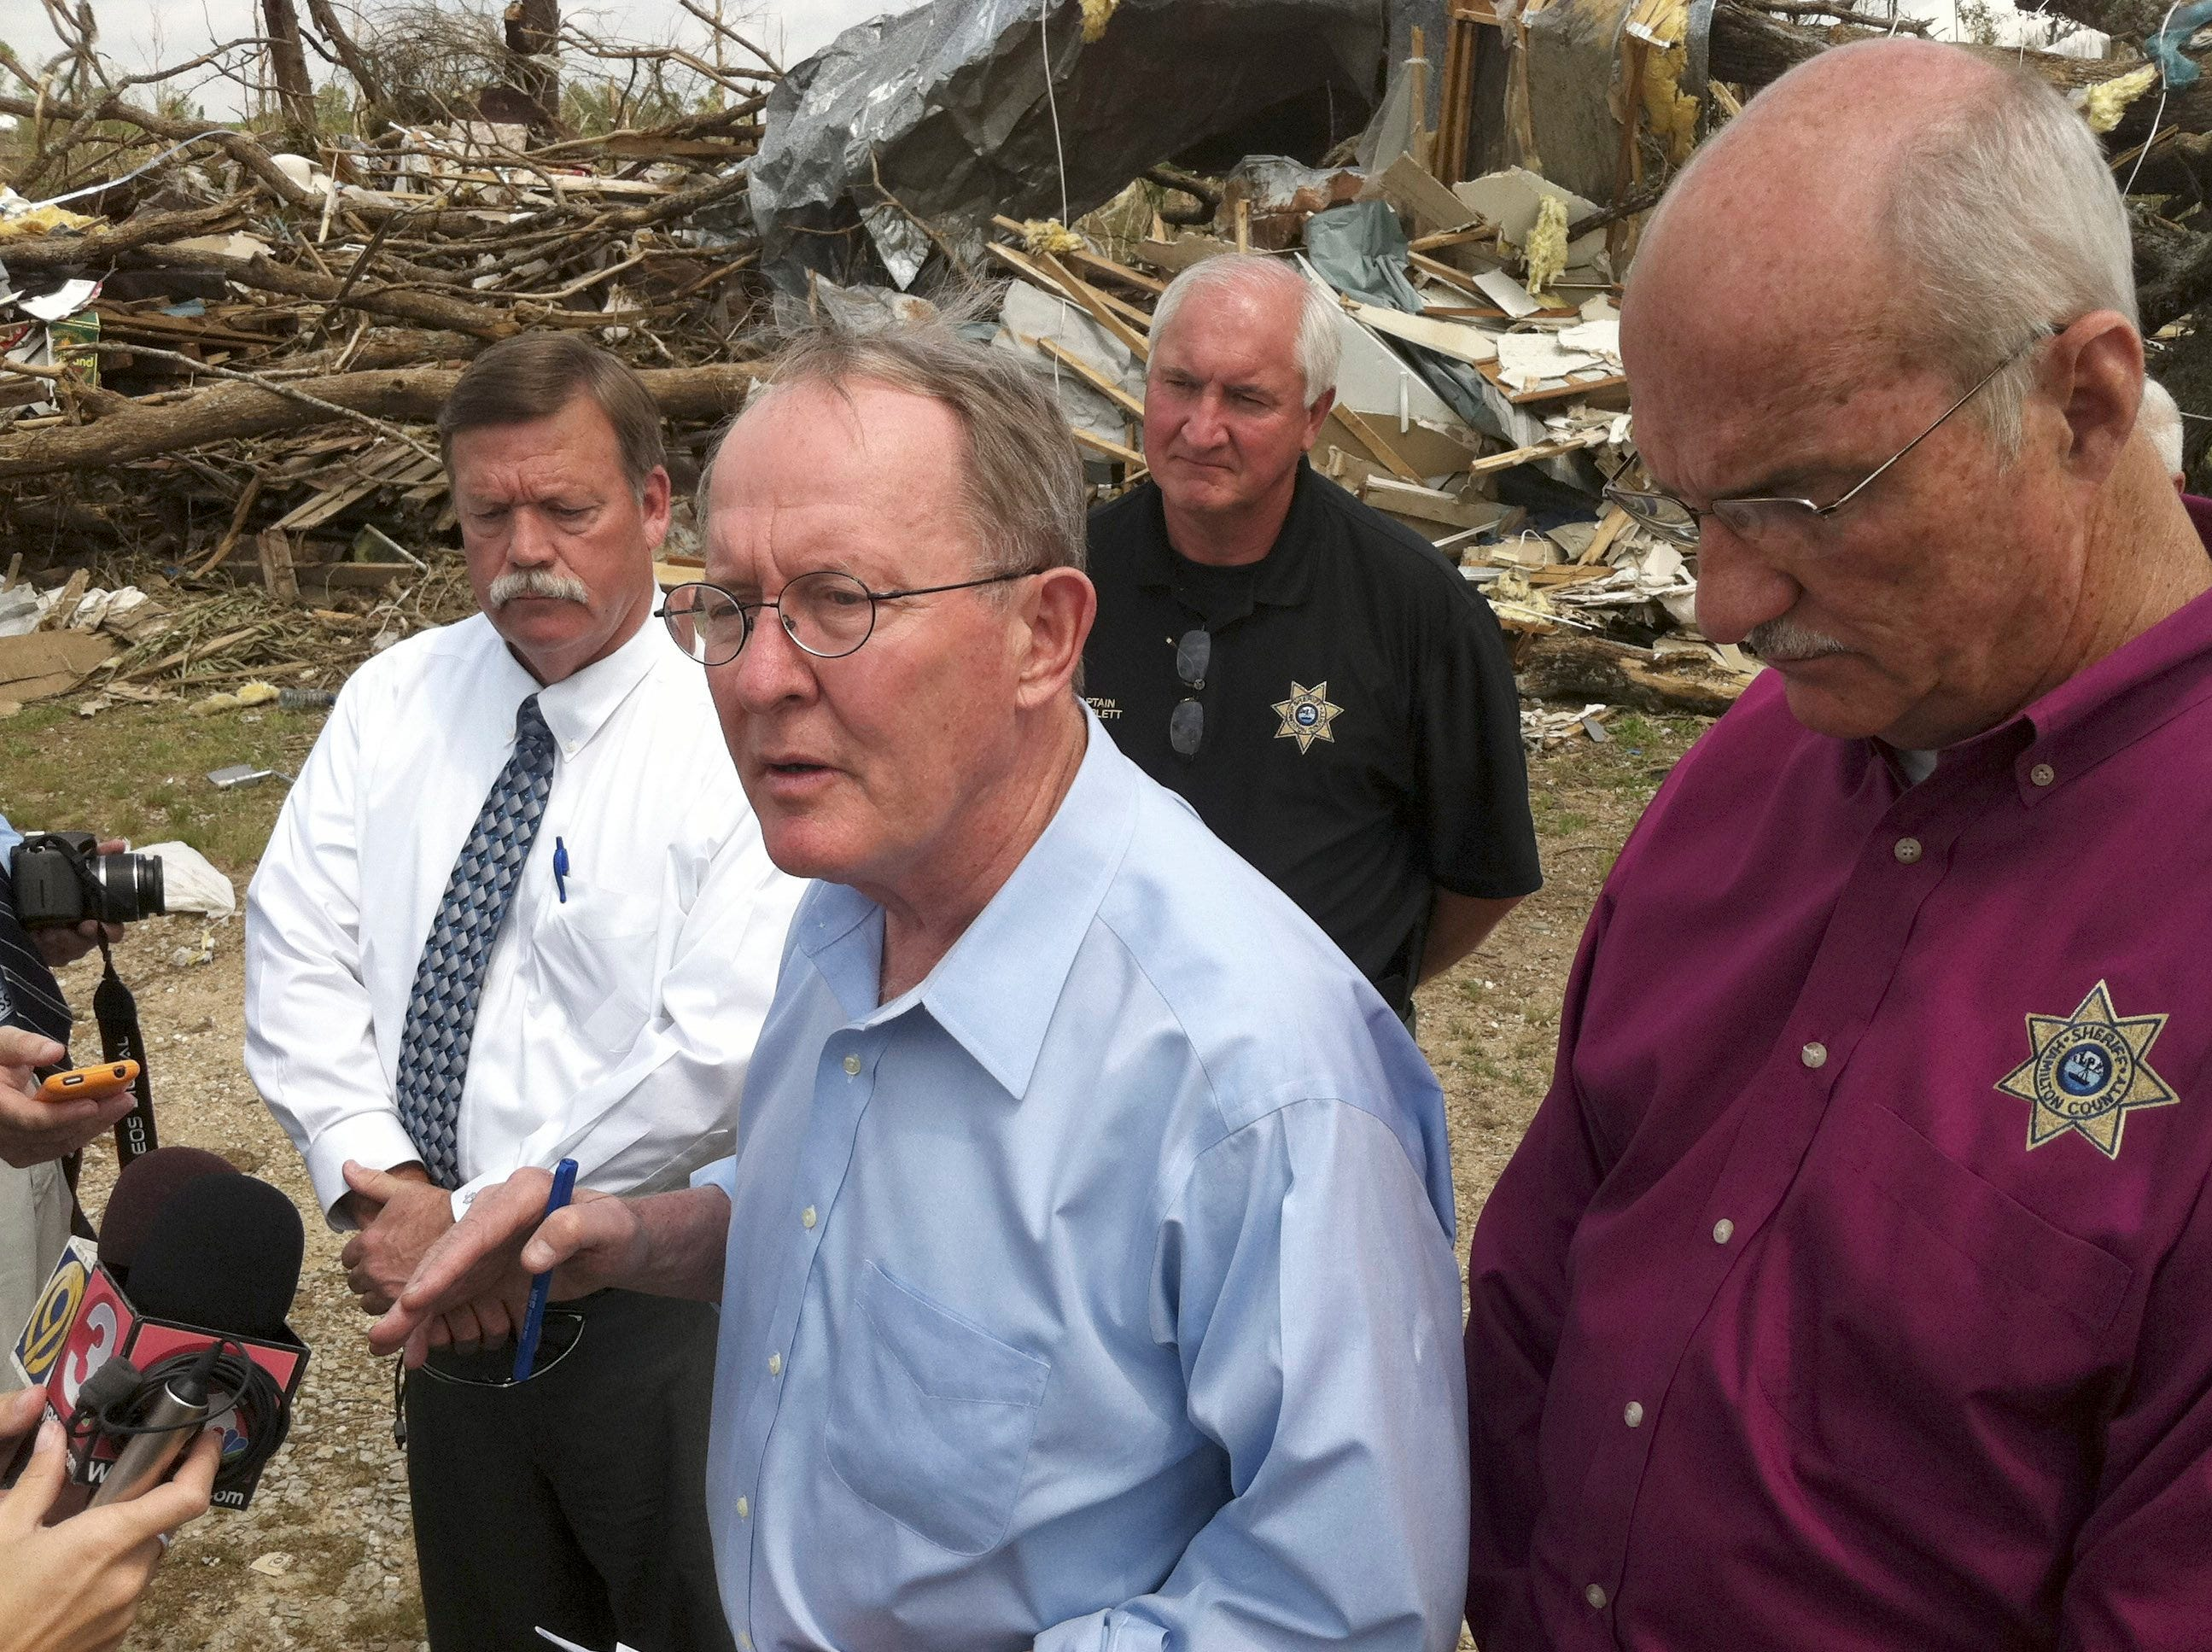 Tennessee U.S. Sen. Lamar Alexander, center, speaks with officials in Apison, Tenn. Monday, May 2, 2011. The small Tennssee town was one of many ravaged by severe storms and tornadoes on April 27.